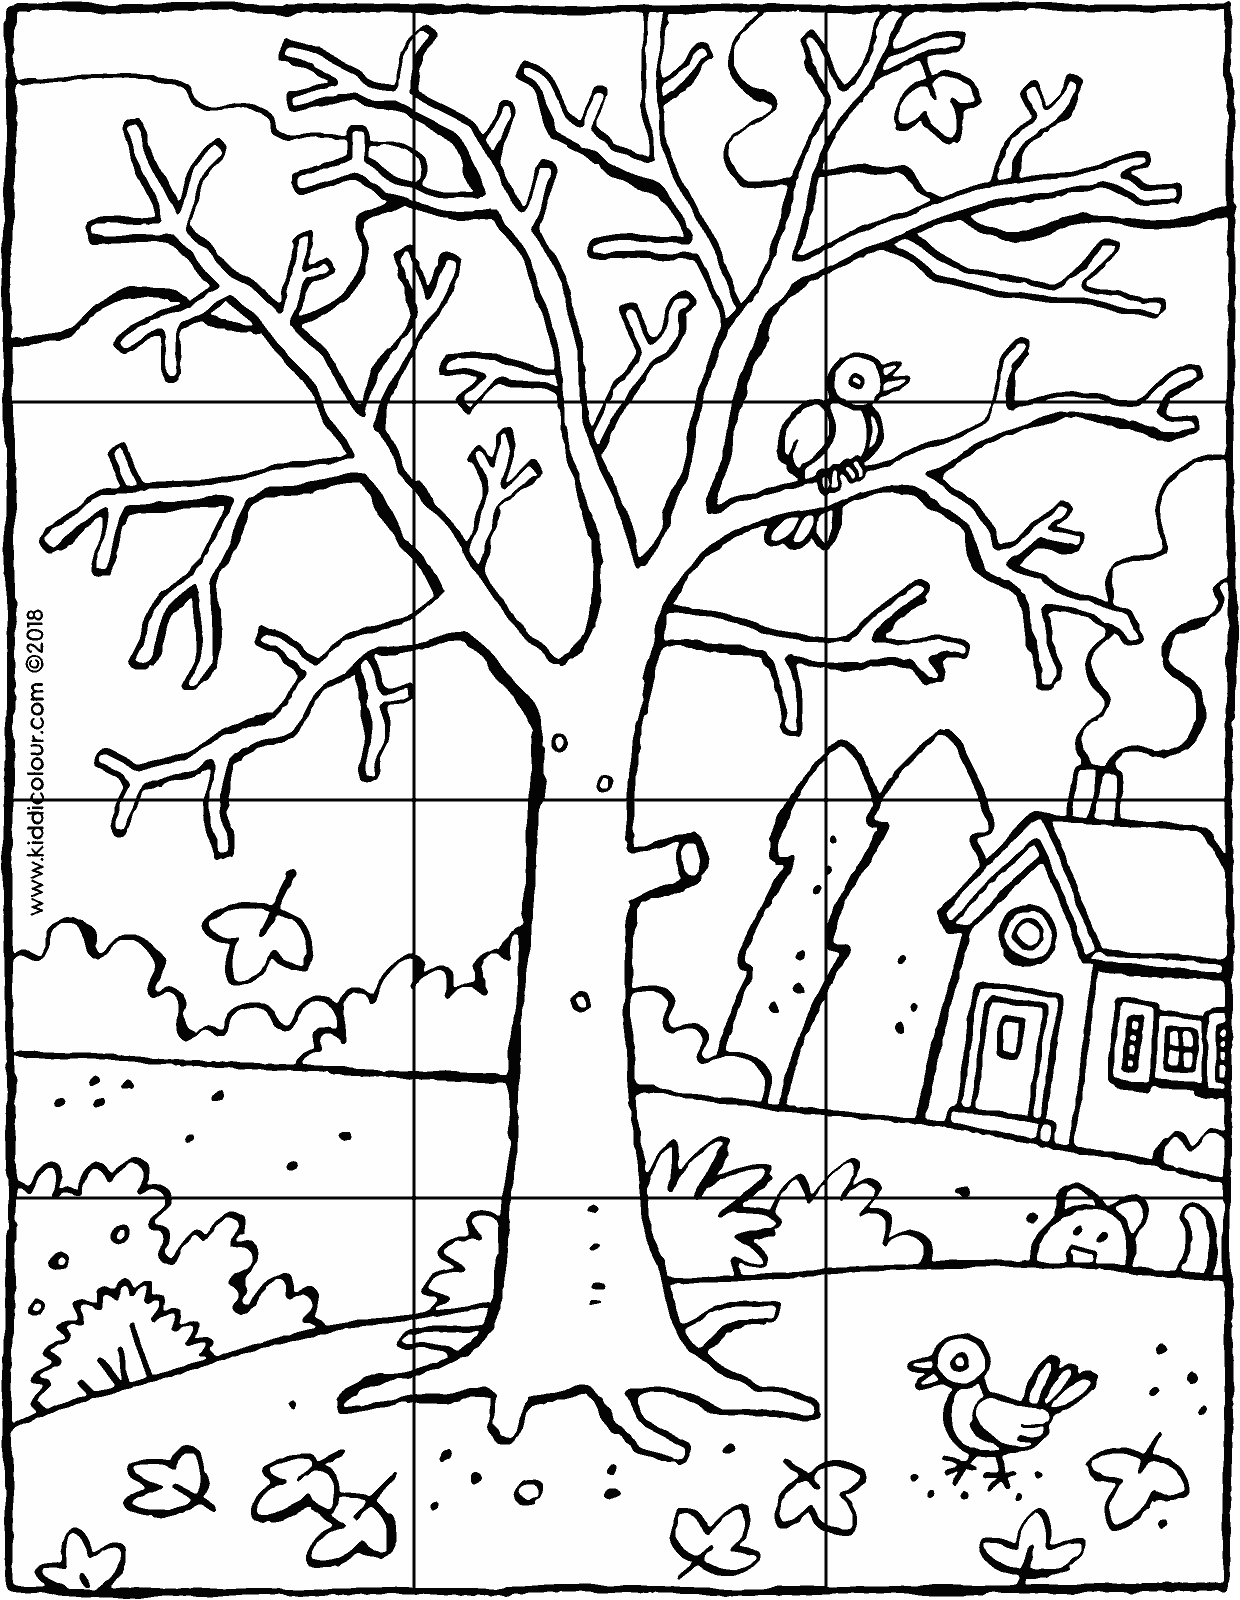 a tree in winter 12-piece puzzle colouring page drawing picture 01V